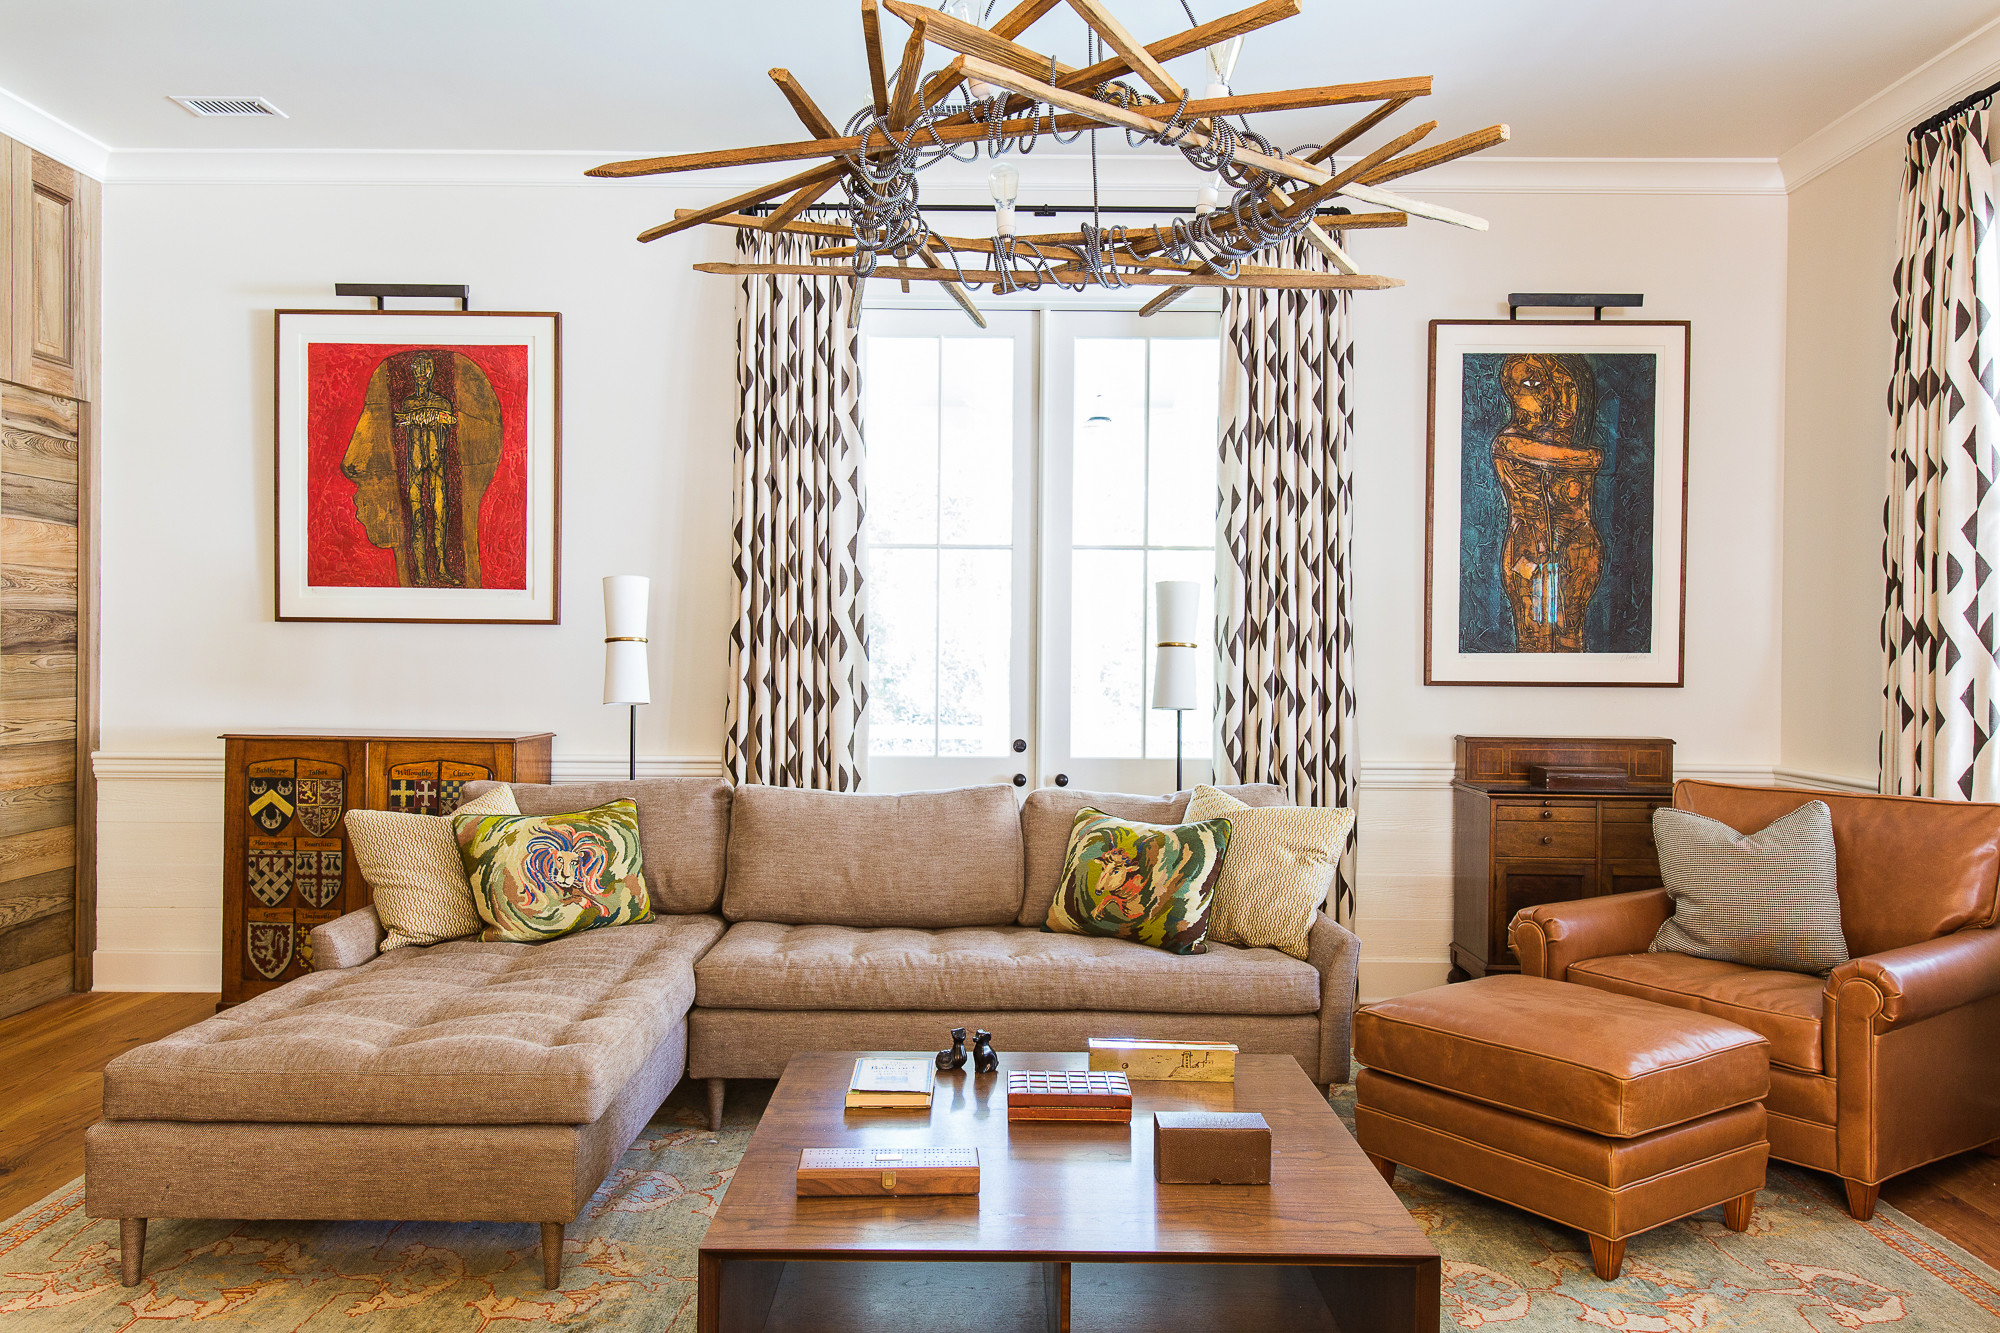 Interior designer Cortney Bishop created a warm and modern beach home by combining pieces that incorporated both refined masculinity and an homage to the past. In the family room, an Old Modern Objects tobacco stick chandelier holds center court to the traditional Ralph Lauren leather chair and ottoman and the Verellen leather sectional sofa below.